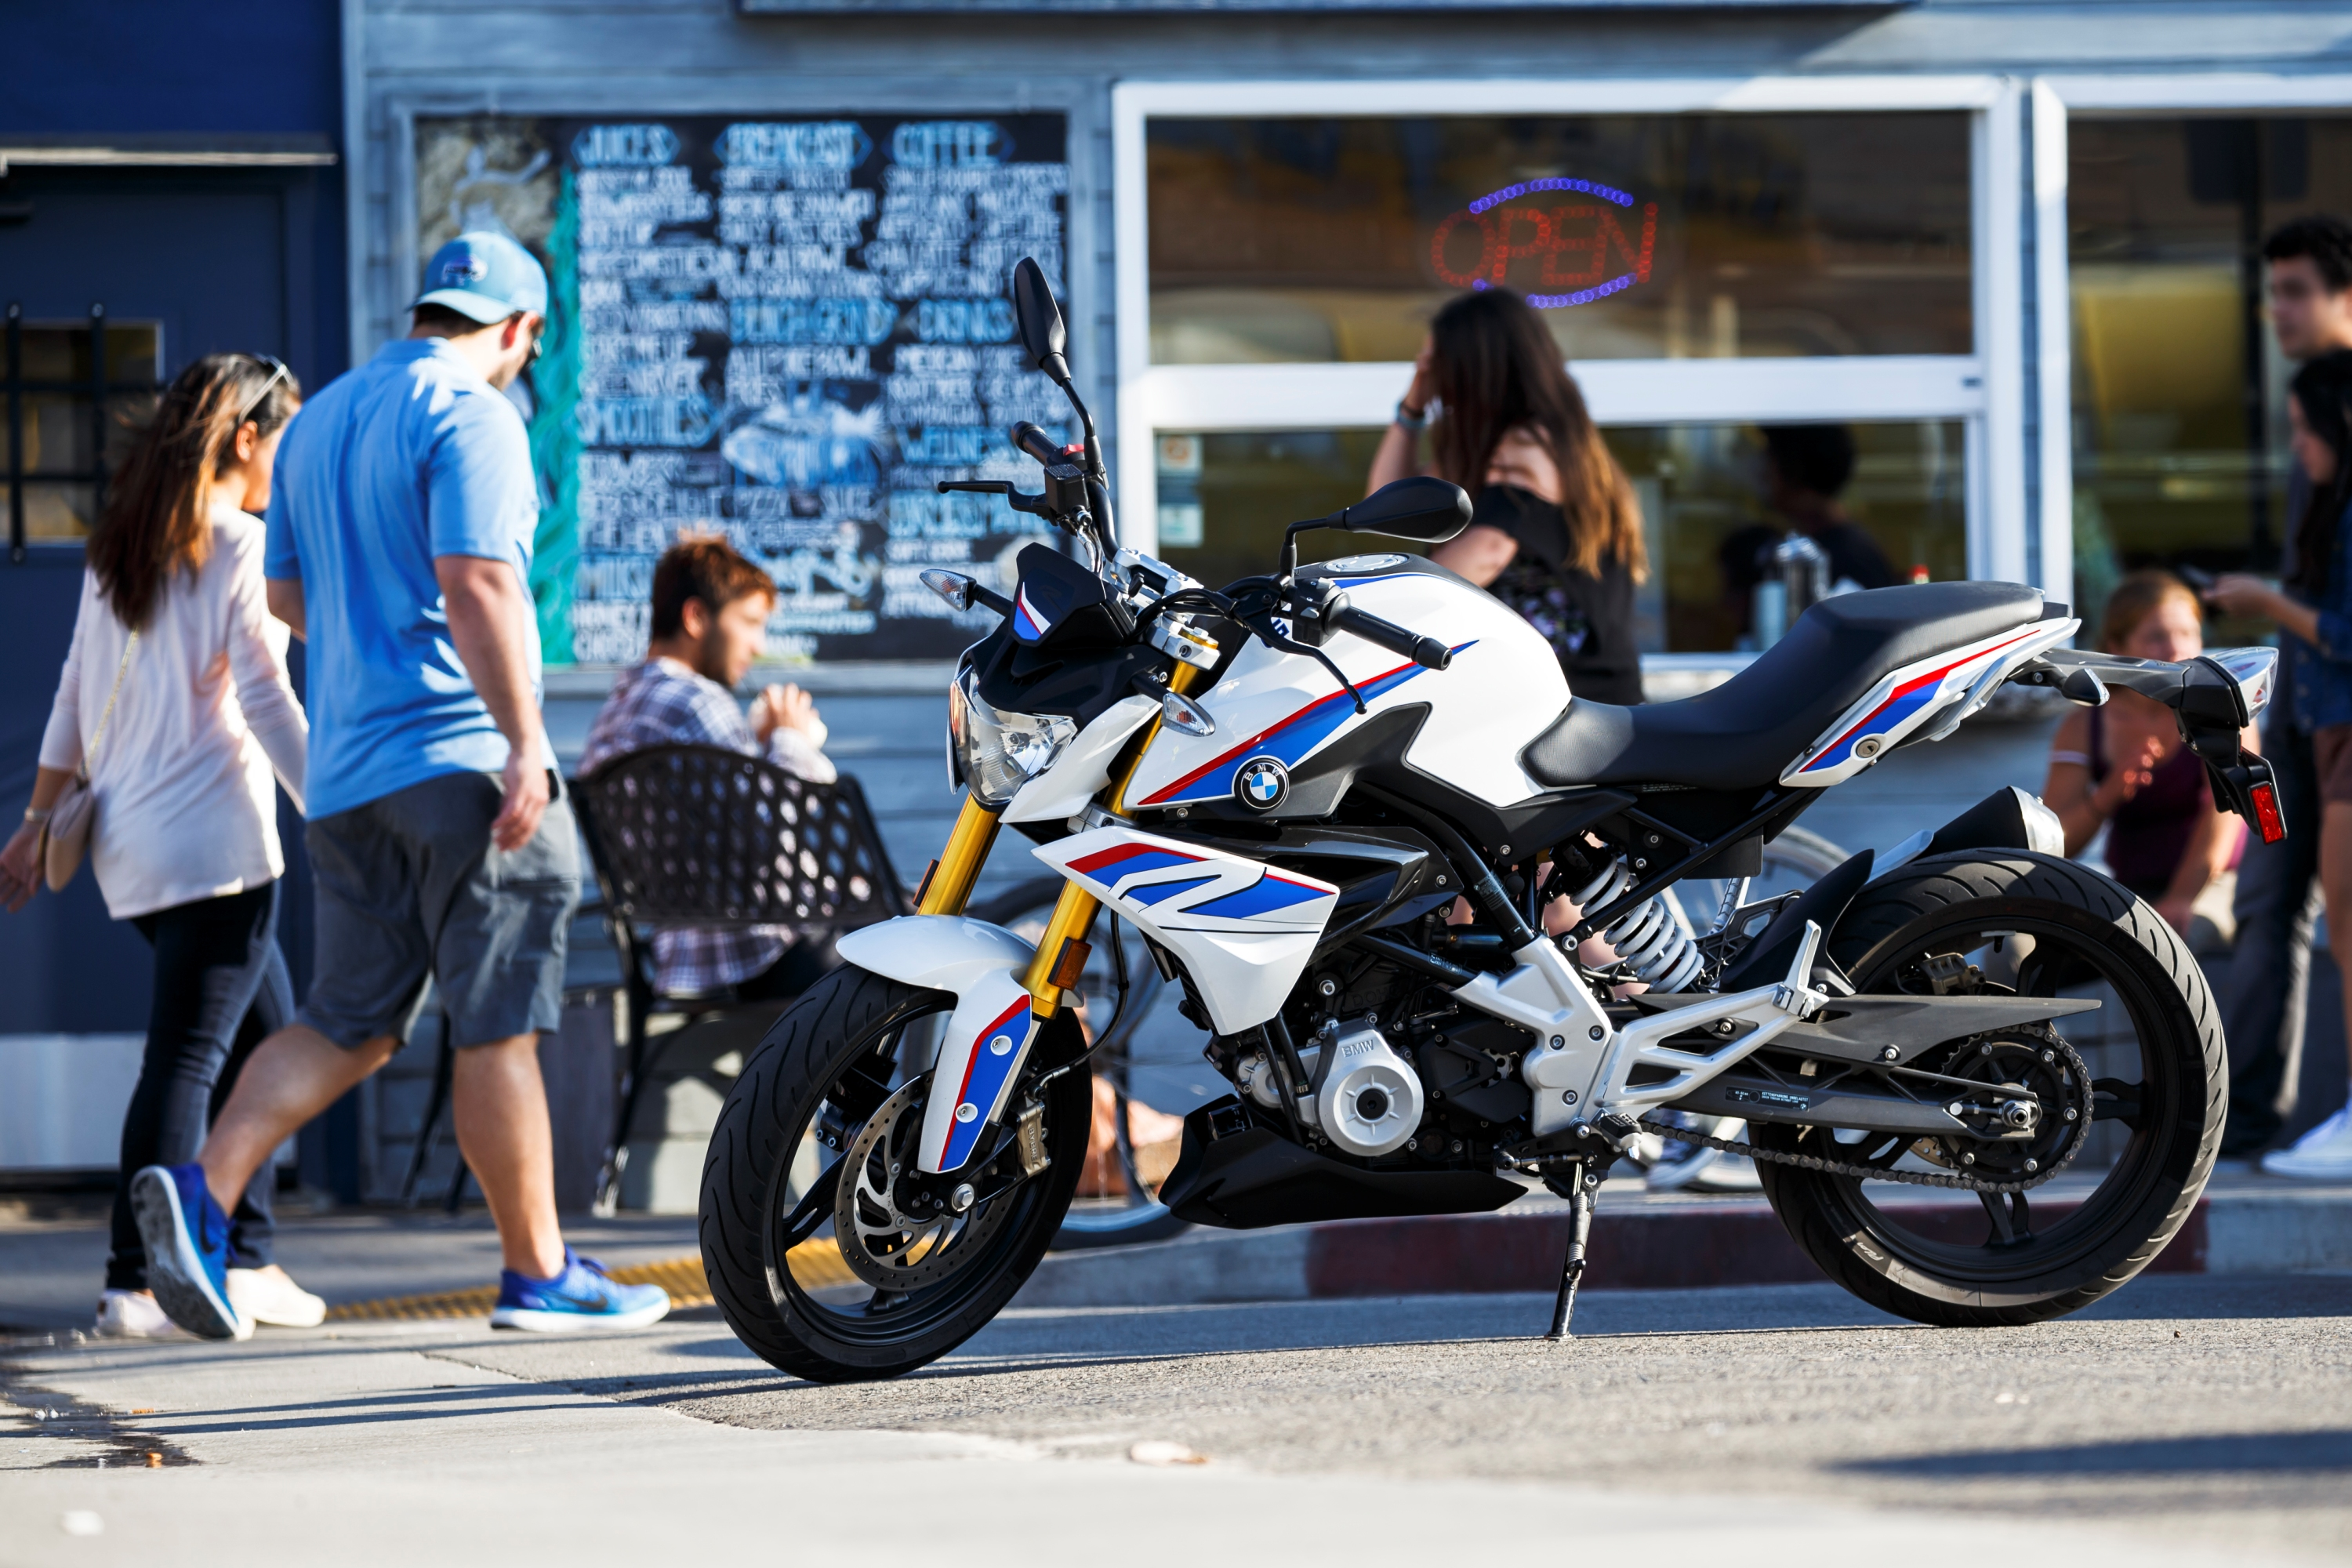 BMW G 310 R in the city